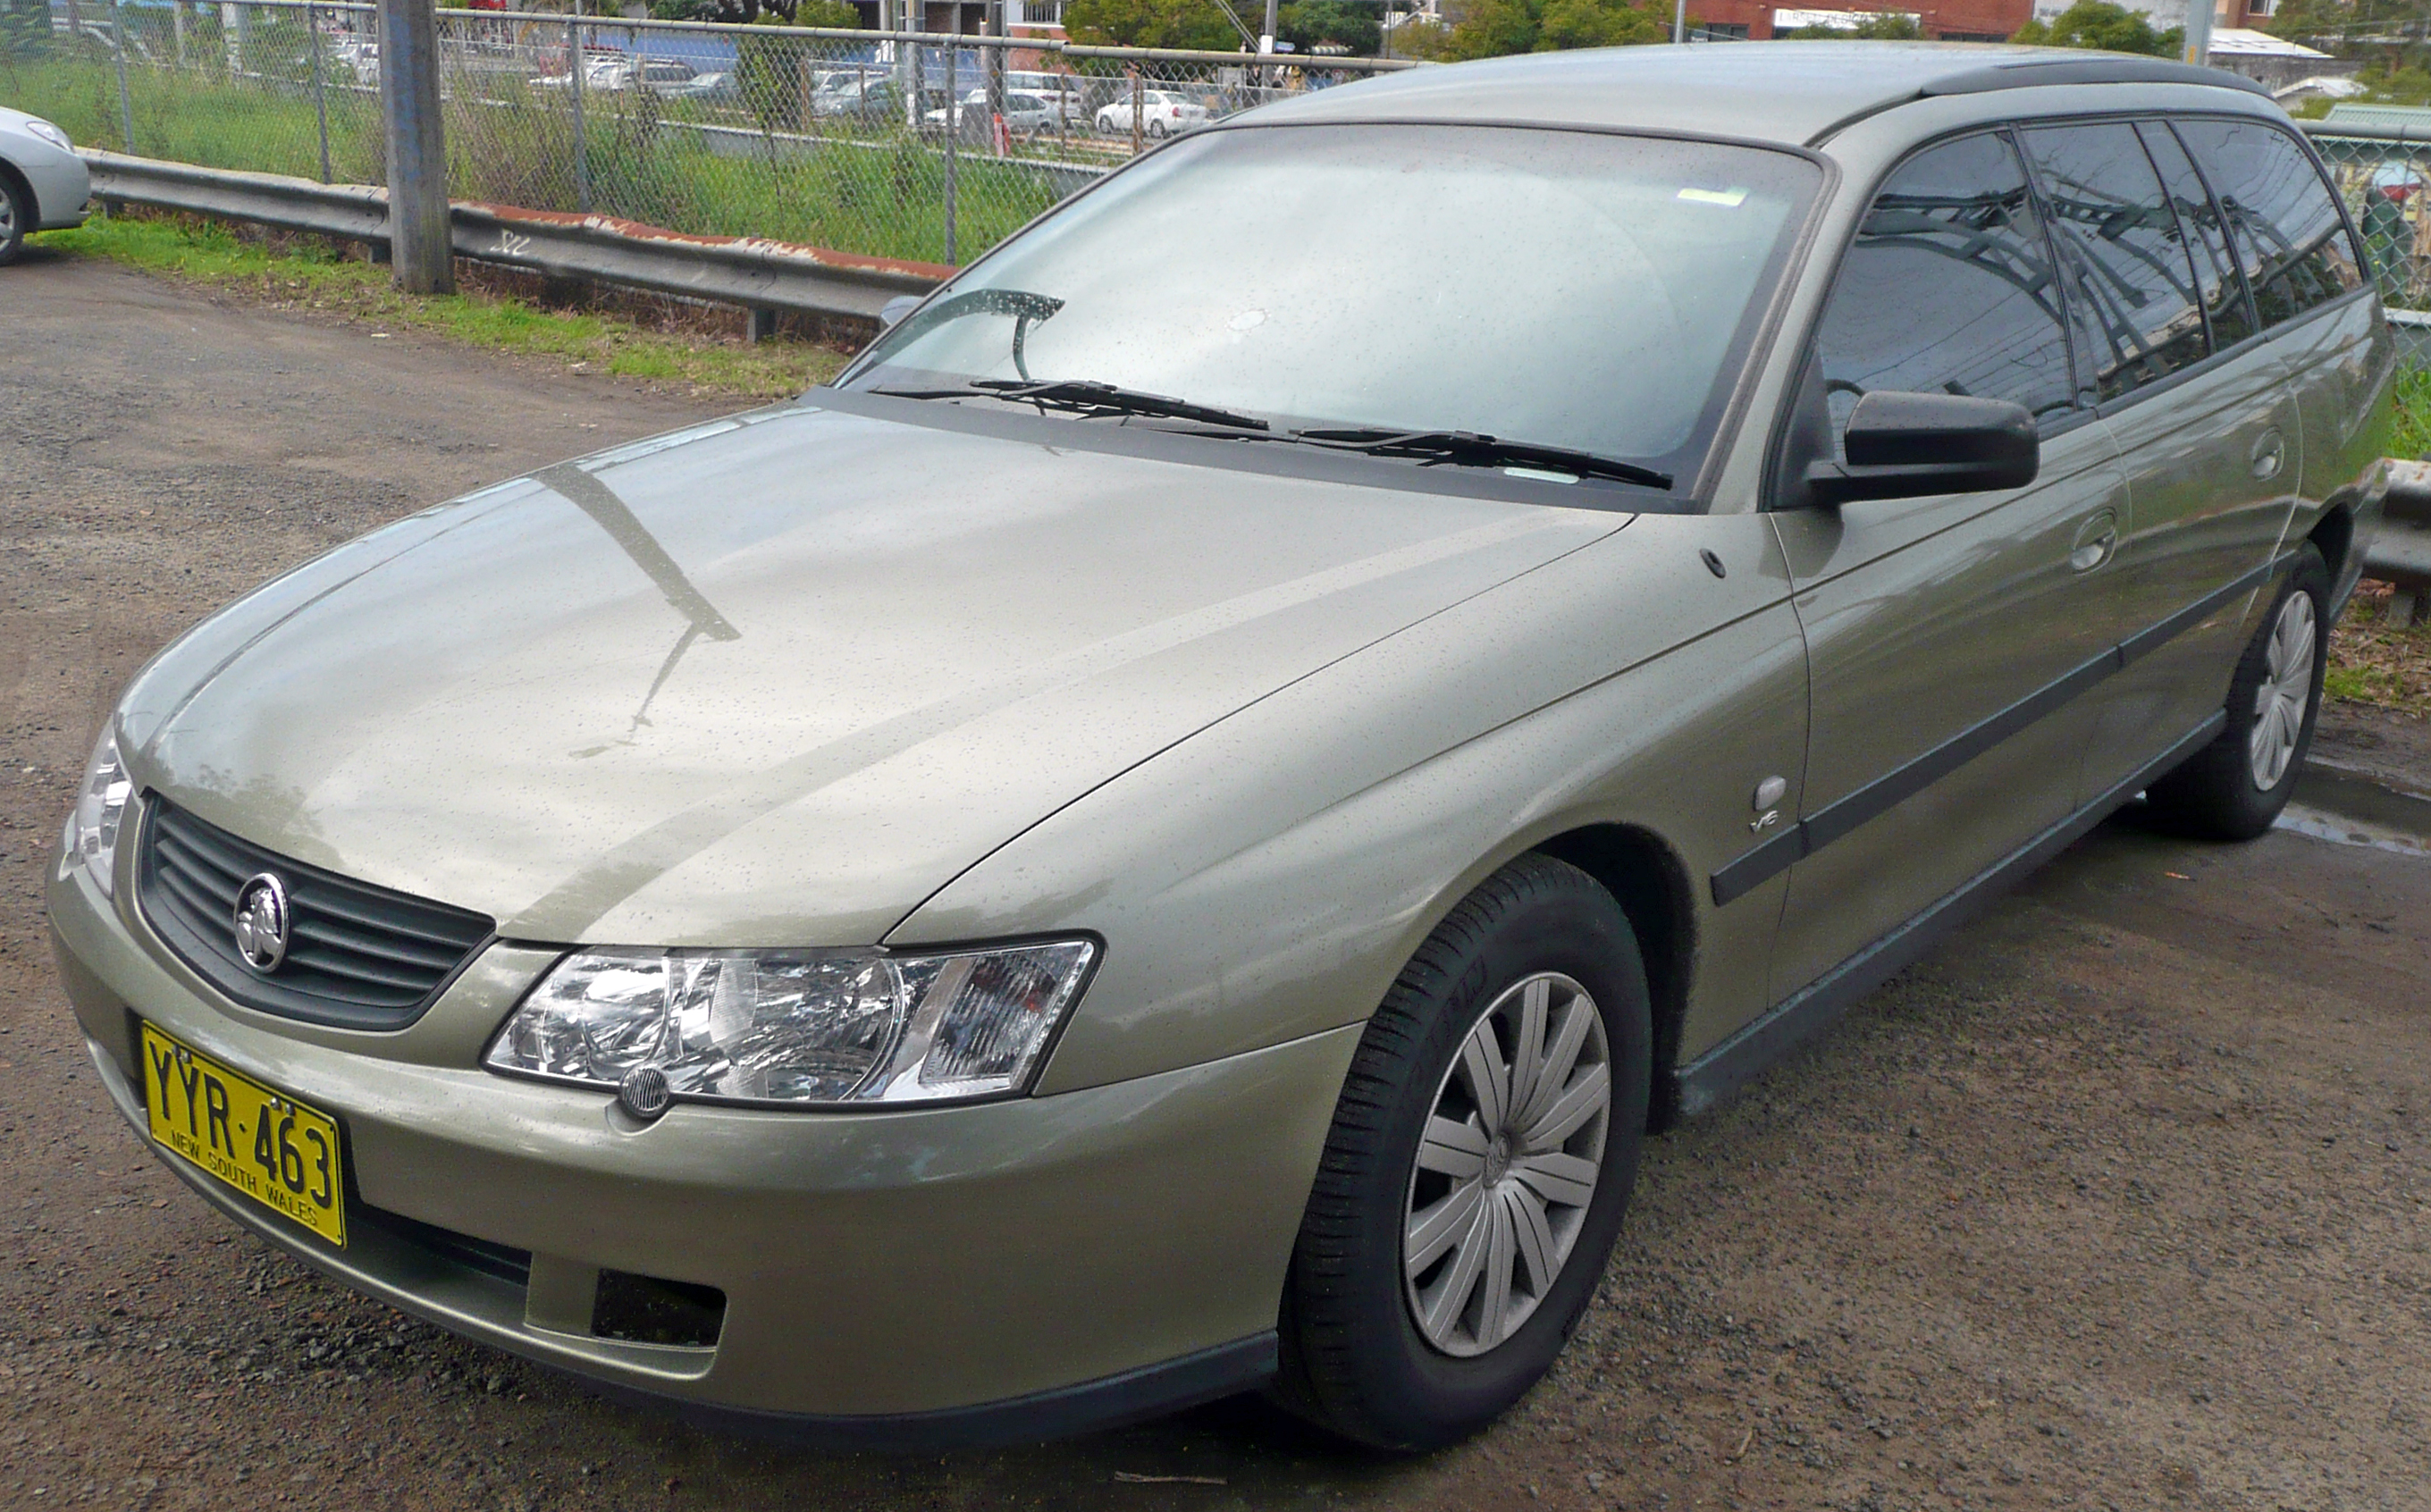 holden commodore wagon (vt) 1998 wallpaper